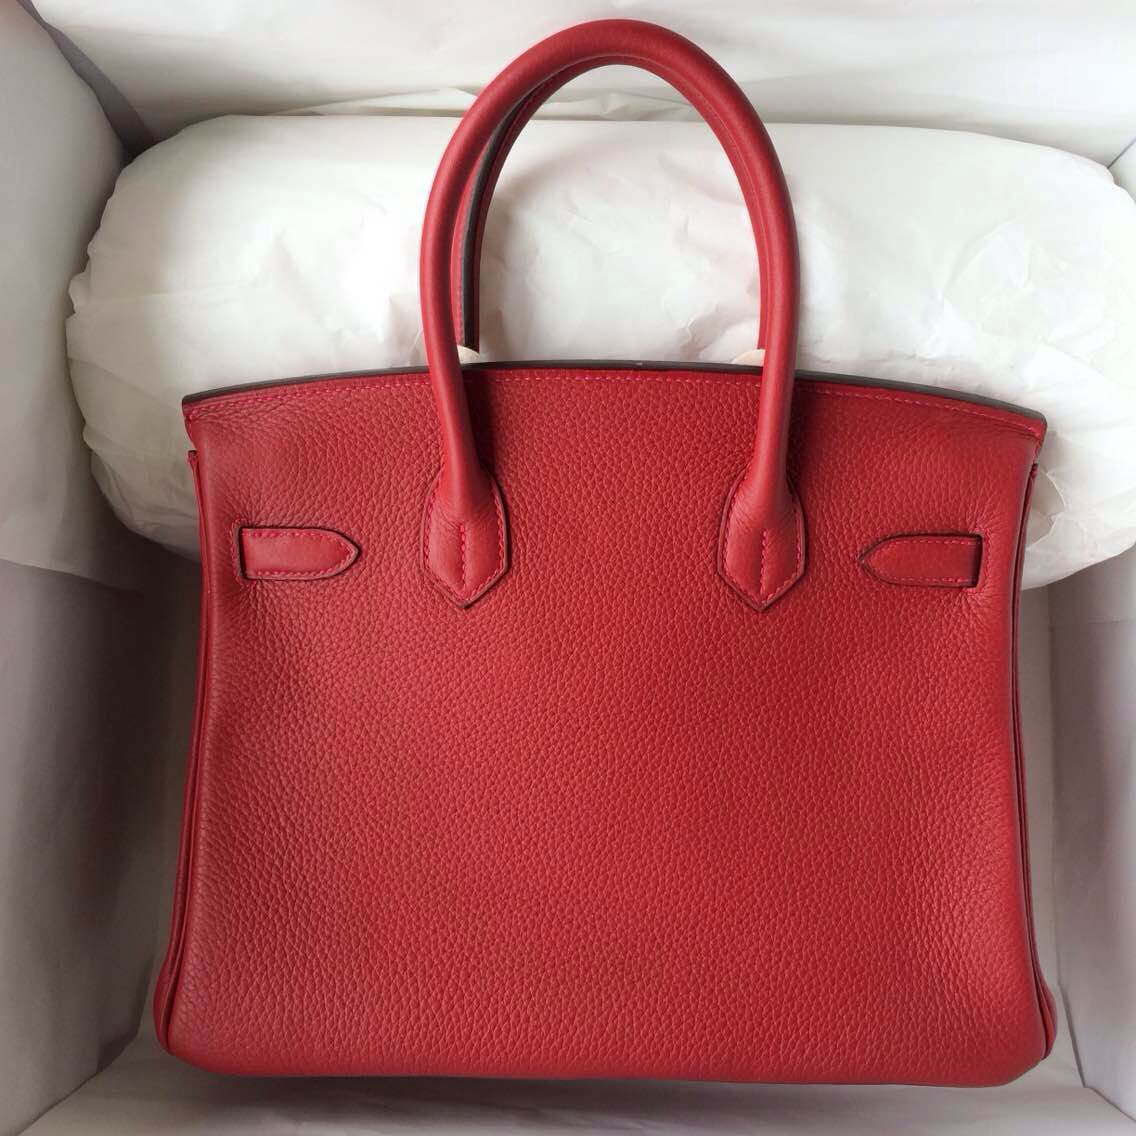 Q5 Candy Red Togo Leather Hermes Birkin30 Gold/Silver Hardware